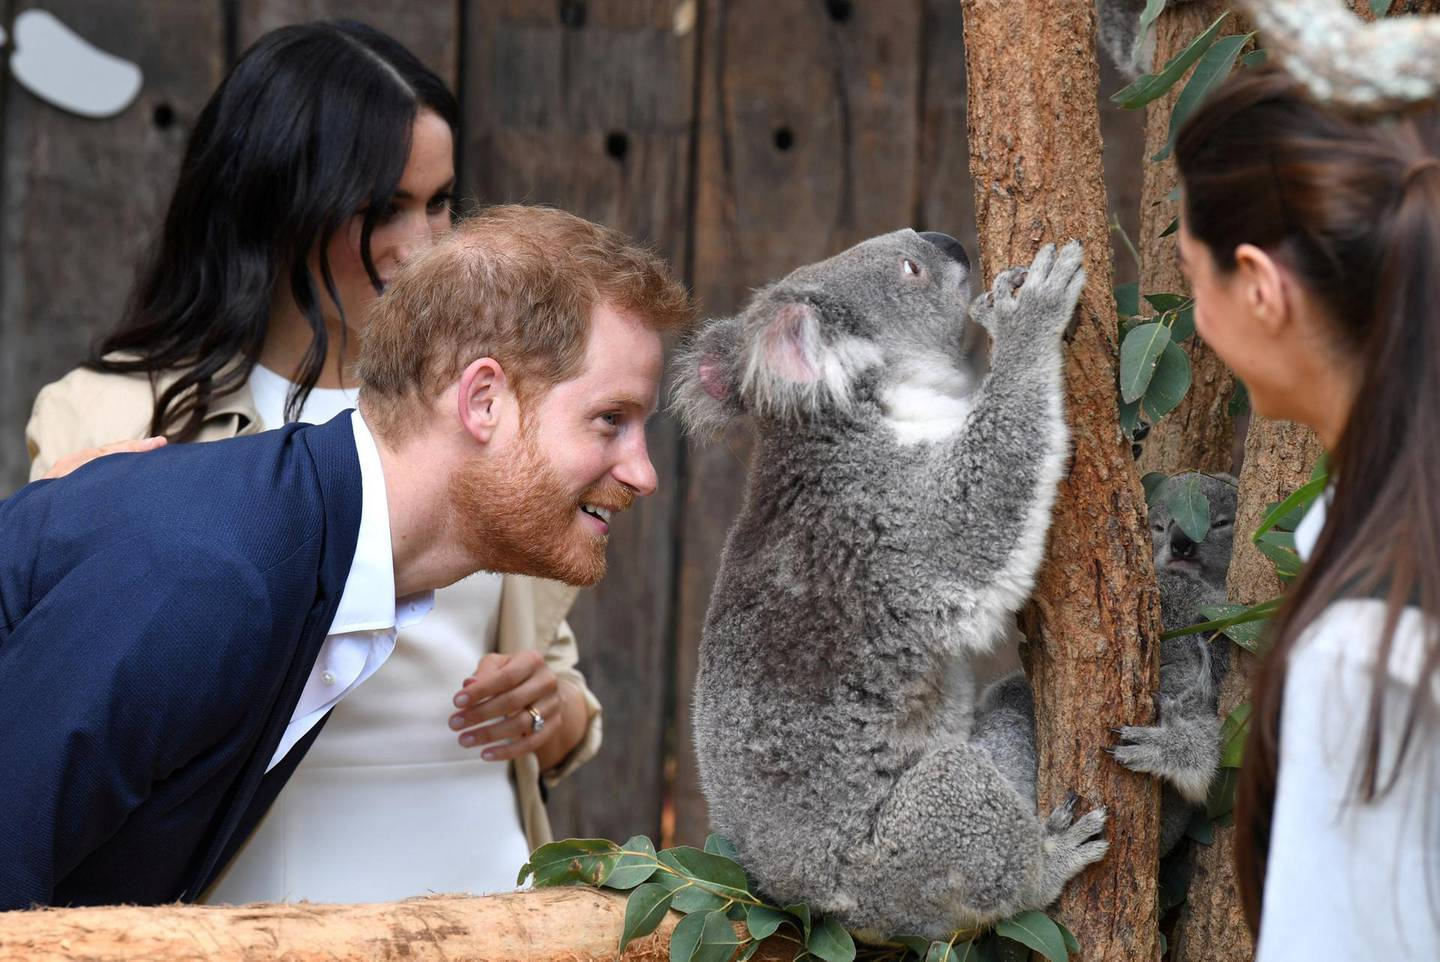 Britain's Prince Harry, the Duke of Sussex, and his wife Meghan, the Duchess of Sussex, are seen meeting Ruby, a mother Koala who gave birth to koala joey Meghan, named after Her Royal Highness, with a second joey named Harry after His Royal Highness, during a visit to Taronga Zoo in Sydney, Australia, October 16, 2018. AAP/Dean Lewins/POOL/via REUTERS  ATTENTION EDITORS - THIS IMAGE WAS PROVIDED BY A THIRD PARTY. NO RESALES. NO ARCHIVE. AUSTRALIA OUT. NEW ZEALAND OUT. TPX IMAGES OF THE DAY  ?